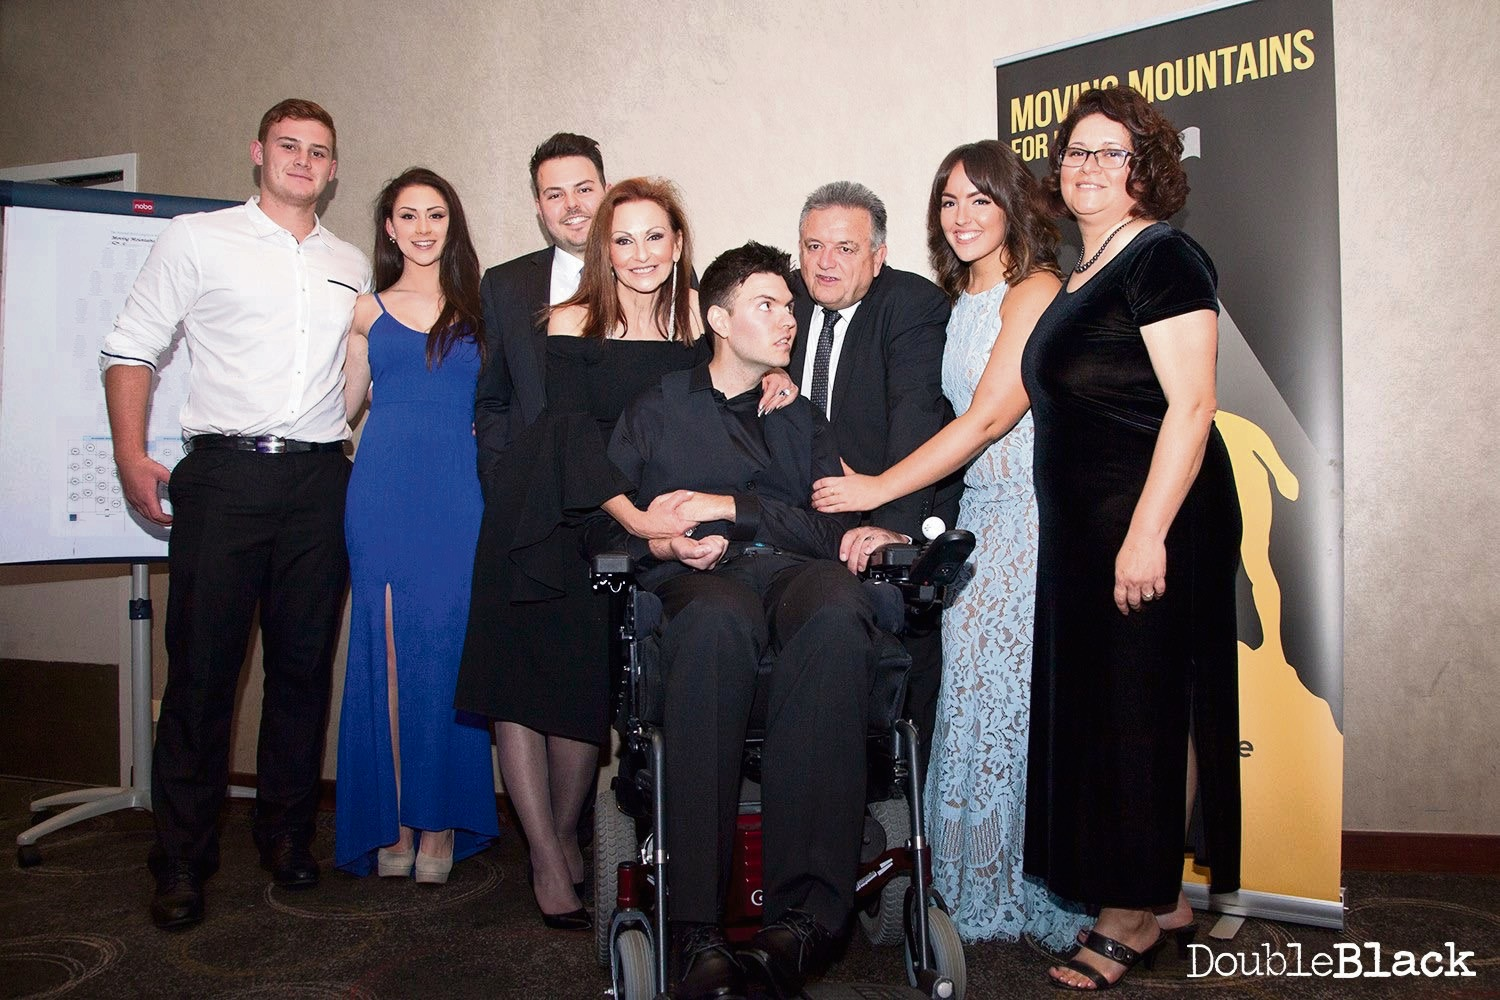 Mitch Cleary with family and friends.